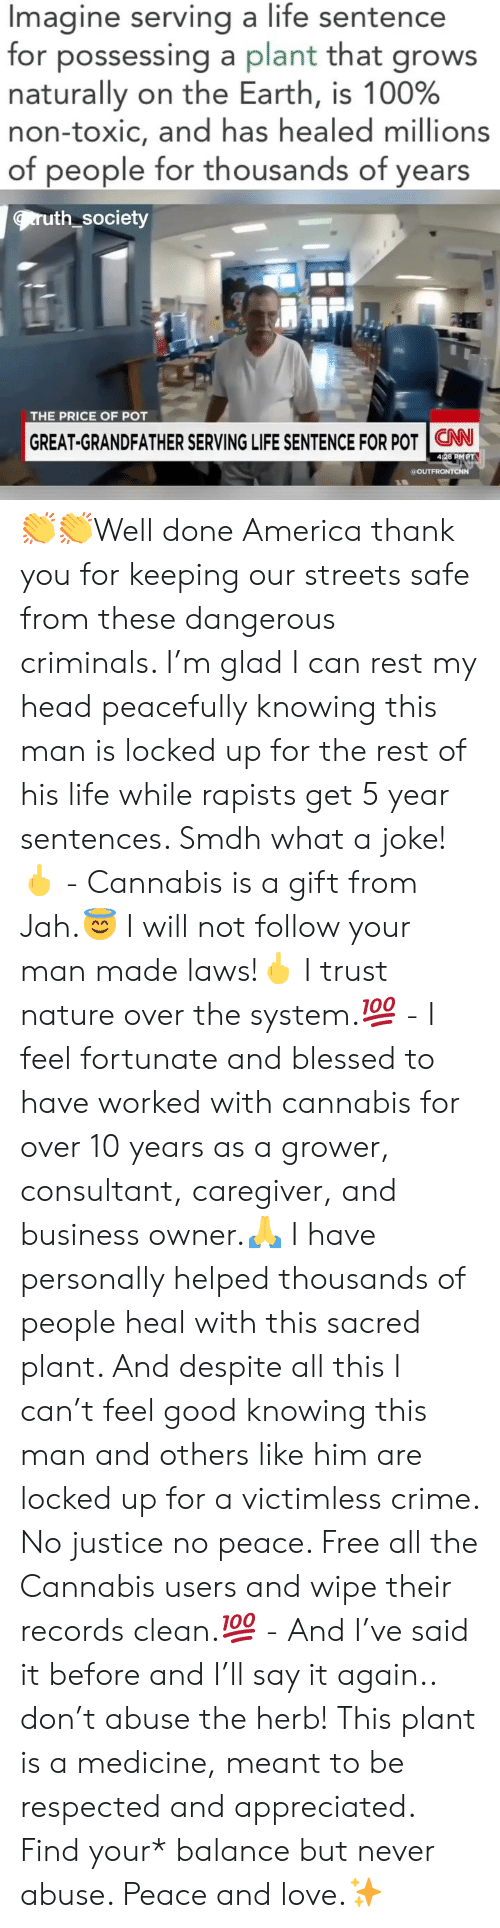 Consultant: Imagine serving a life sentence  for possessing a plant that grows  naturally on the Earth, is 100%  non-toxic, and has healed millions  of people for thousands of years  ruth society  THE PRICE OF POT  GREAT-GRANDFATHER SERVING LIFE SENTENCE FOR POT   CNN-  428 PMPT  a OUT 👏👏Well done America thank you for keeping our streets safe from these dangerous criminals. I'm glad I can rest my head peacefully knowing this man is locked up for the rest of his life while rapists get 5 year sentences. Smdh what a joke!🖕 - Cannabis is a gift from Jah.😇 I will not follow your man made laws!🖕 I trust nature over the system.💯 - I feel fortunate and blessed to have worked with cannabis for over 10 years as a grower, consultant, caregiver, and business owner.🙏 I have personally helped thousands of people heal with this sacred plant. And despite all this I can't feel good knowing this man and others like him are locked up for a victimless crime. No justice no peace. Free all the Cannabis users and wipe their records clean.💯 - And I've said it before and I'll say it again.. don't abuse the herb! This plant is a medicine, meant to be respected and appreciated. Find your* balance but never abuse. Peace and love.✨